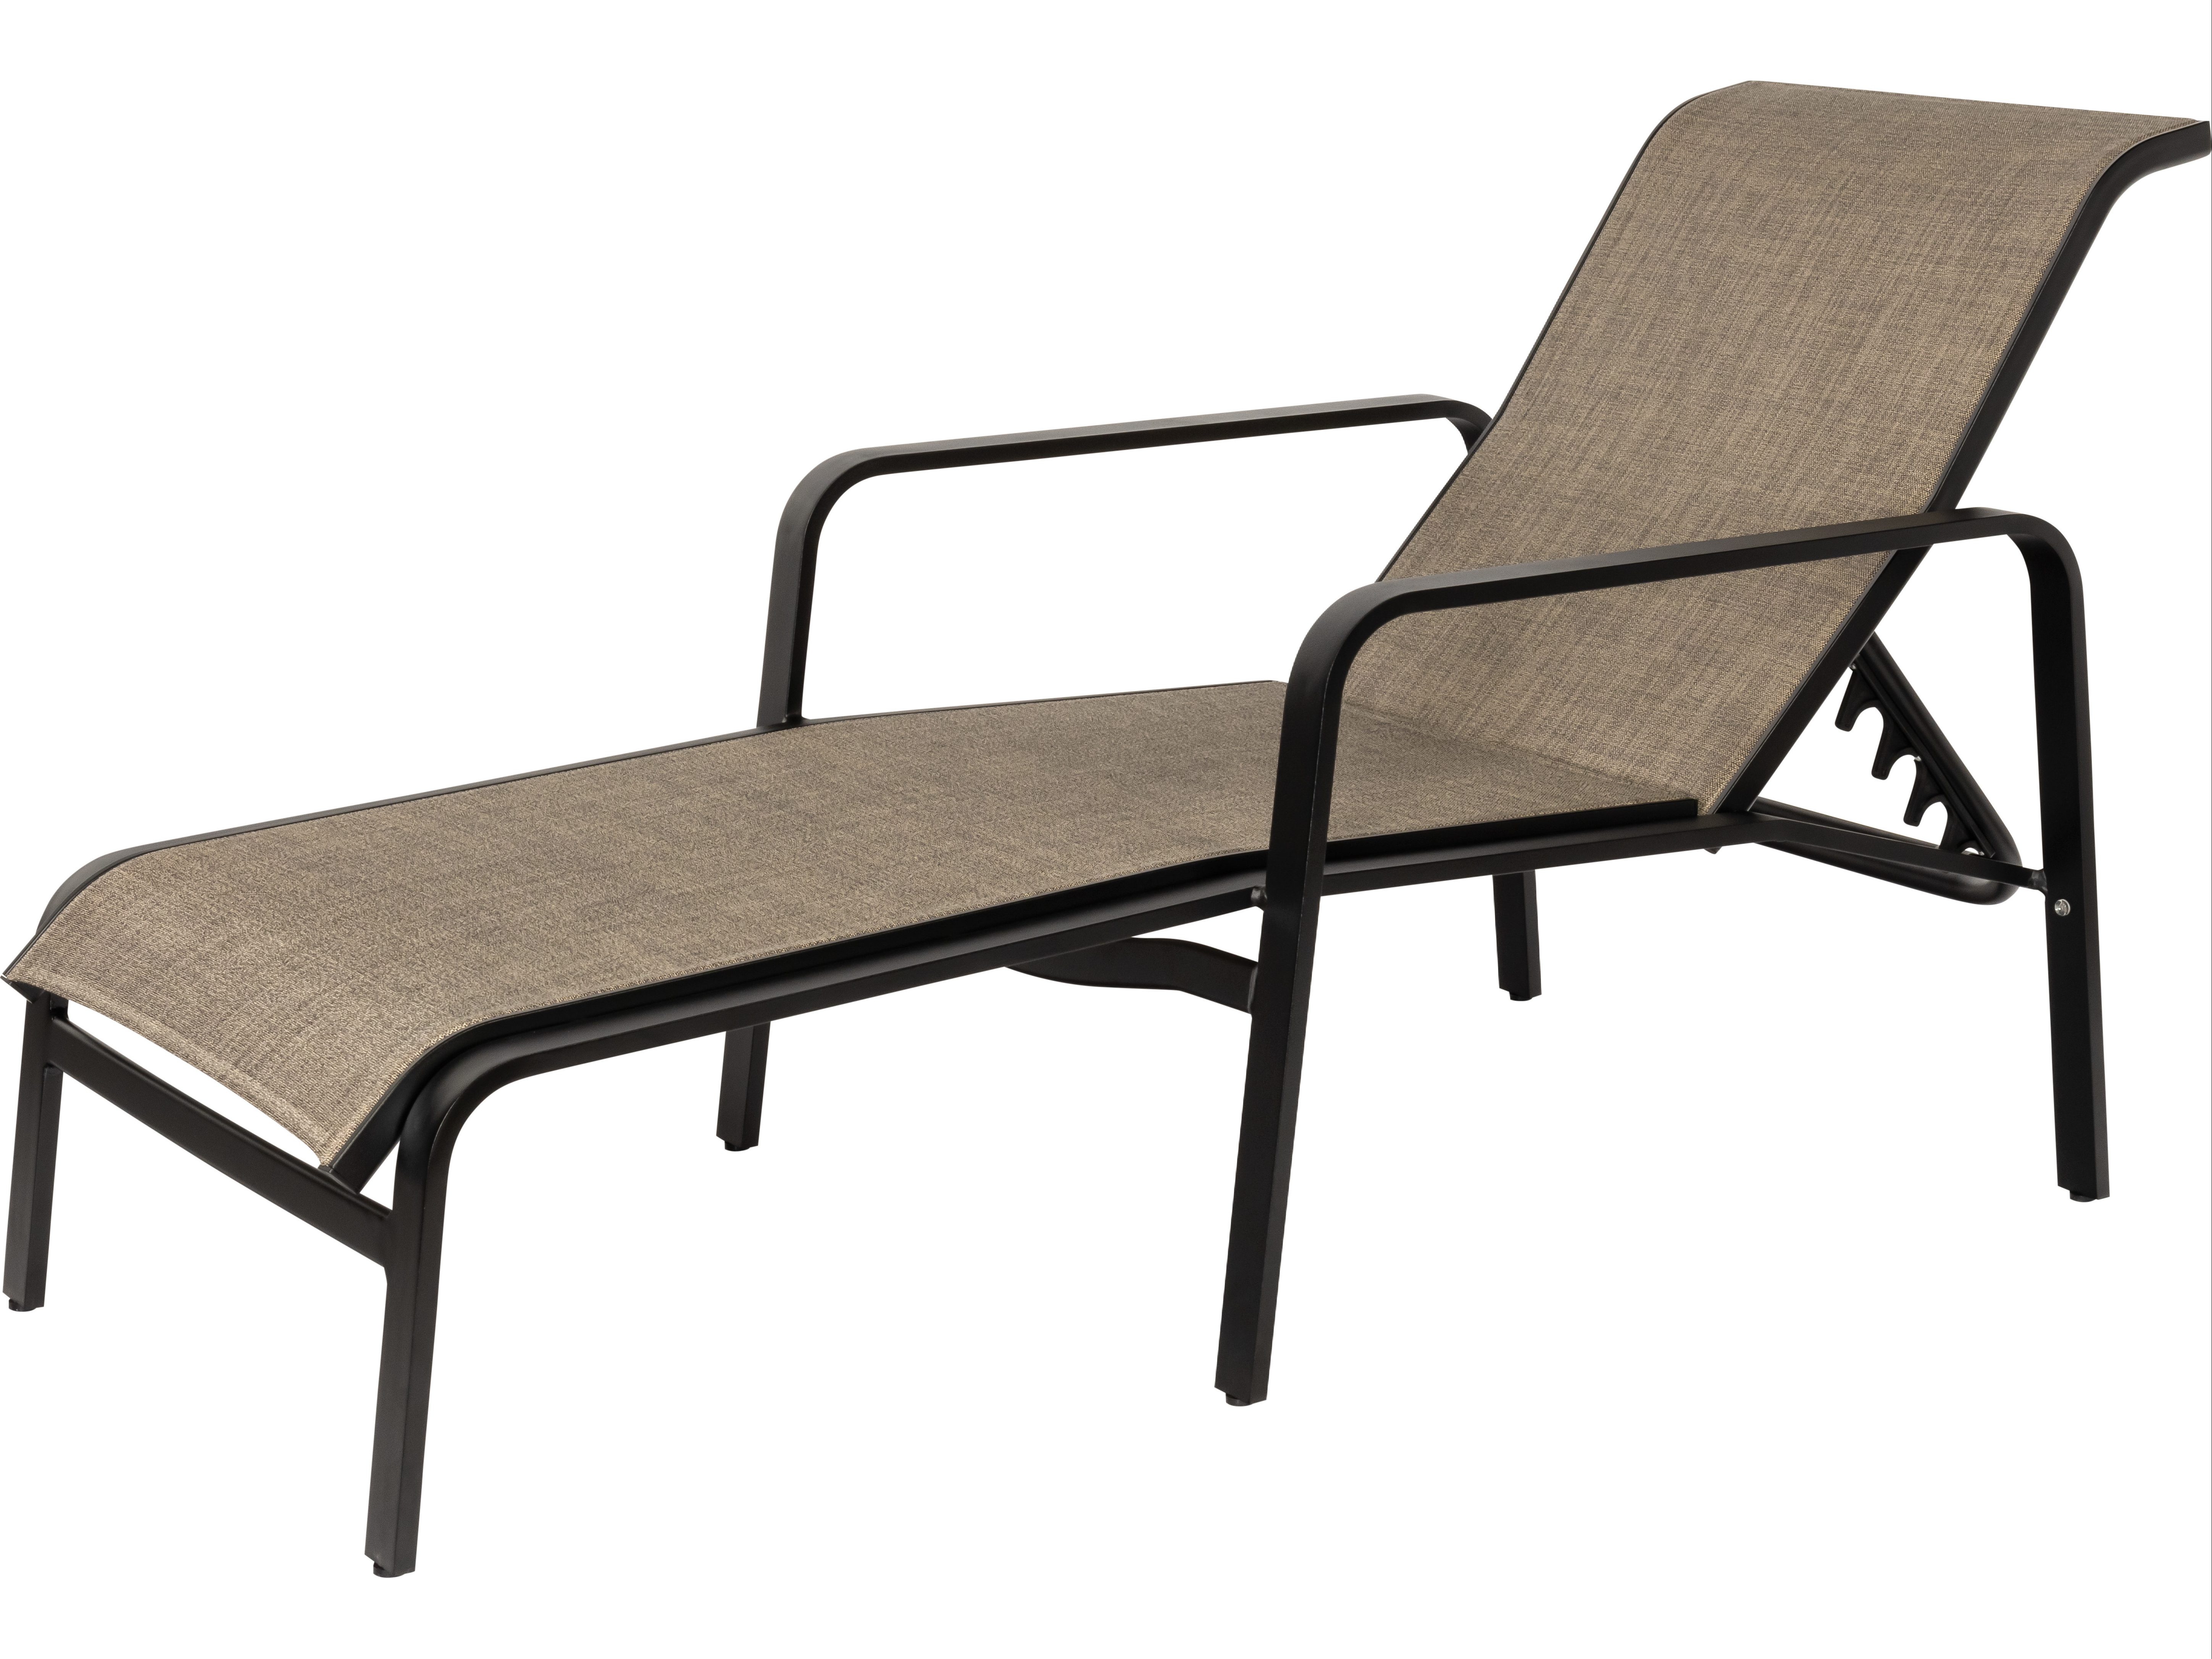 Woodard Landings Sling Aluminum Chaise Lounge With Fashionable Aluminum Wheeled Chaise Lounges (View 25 of 25)